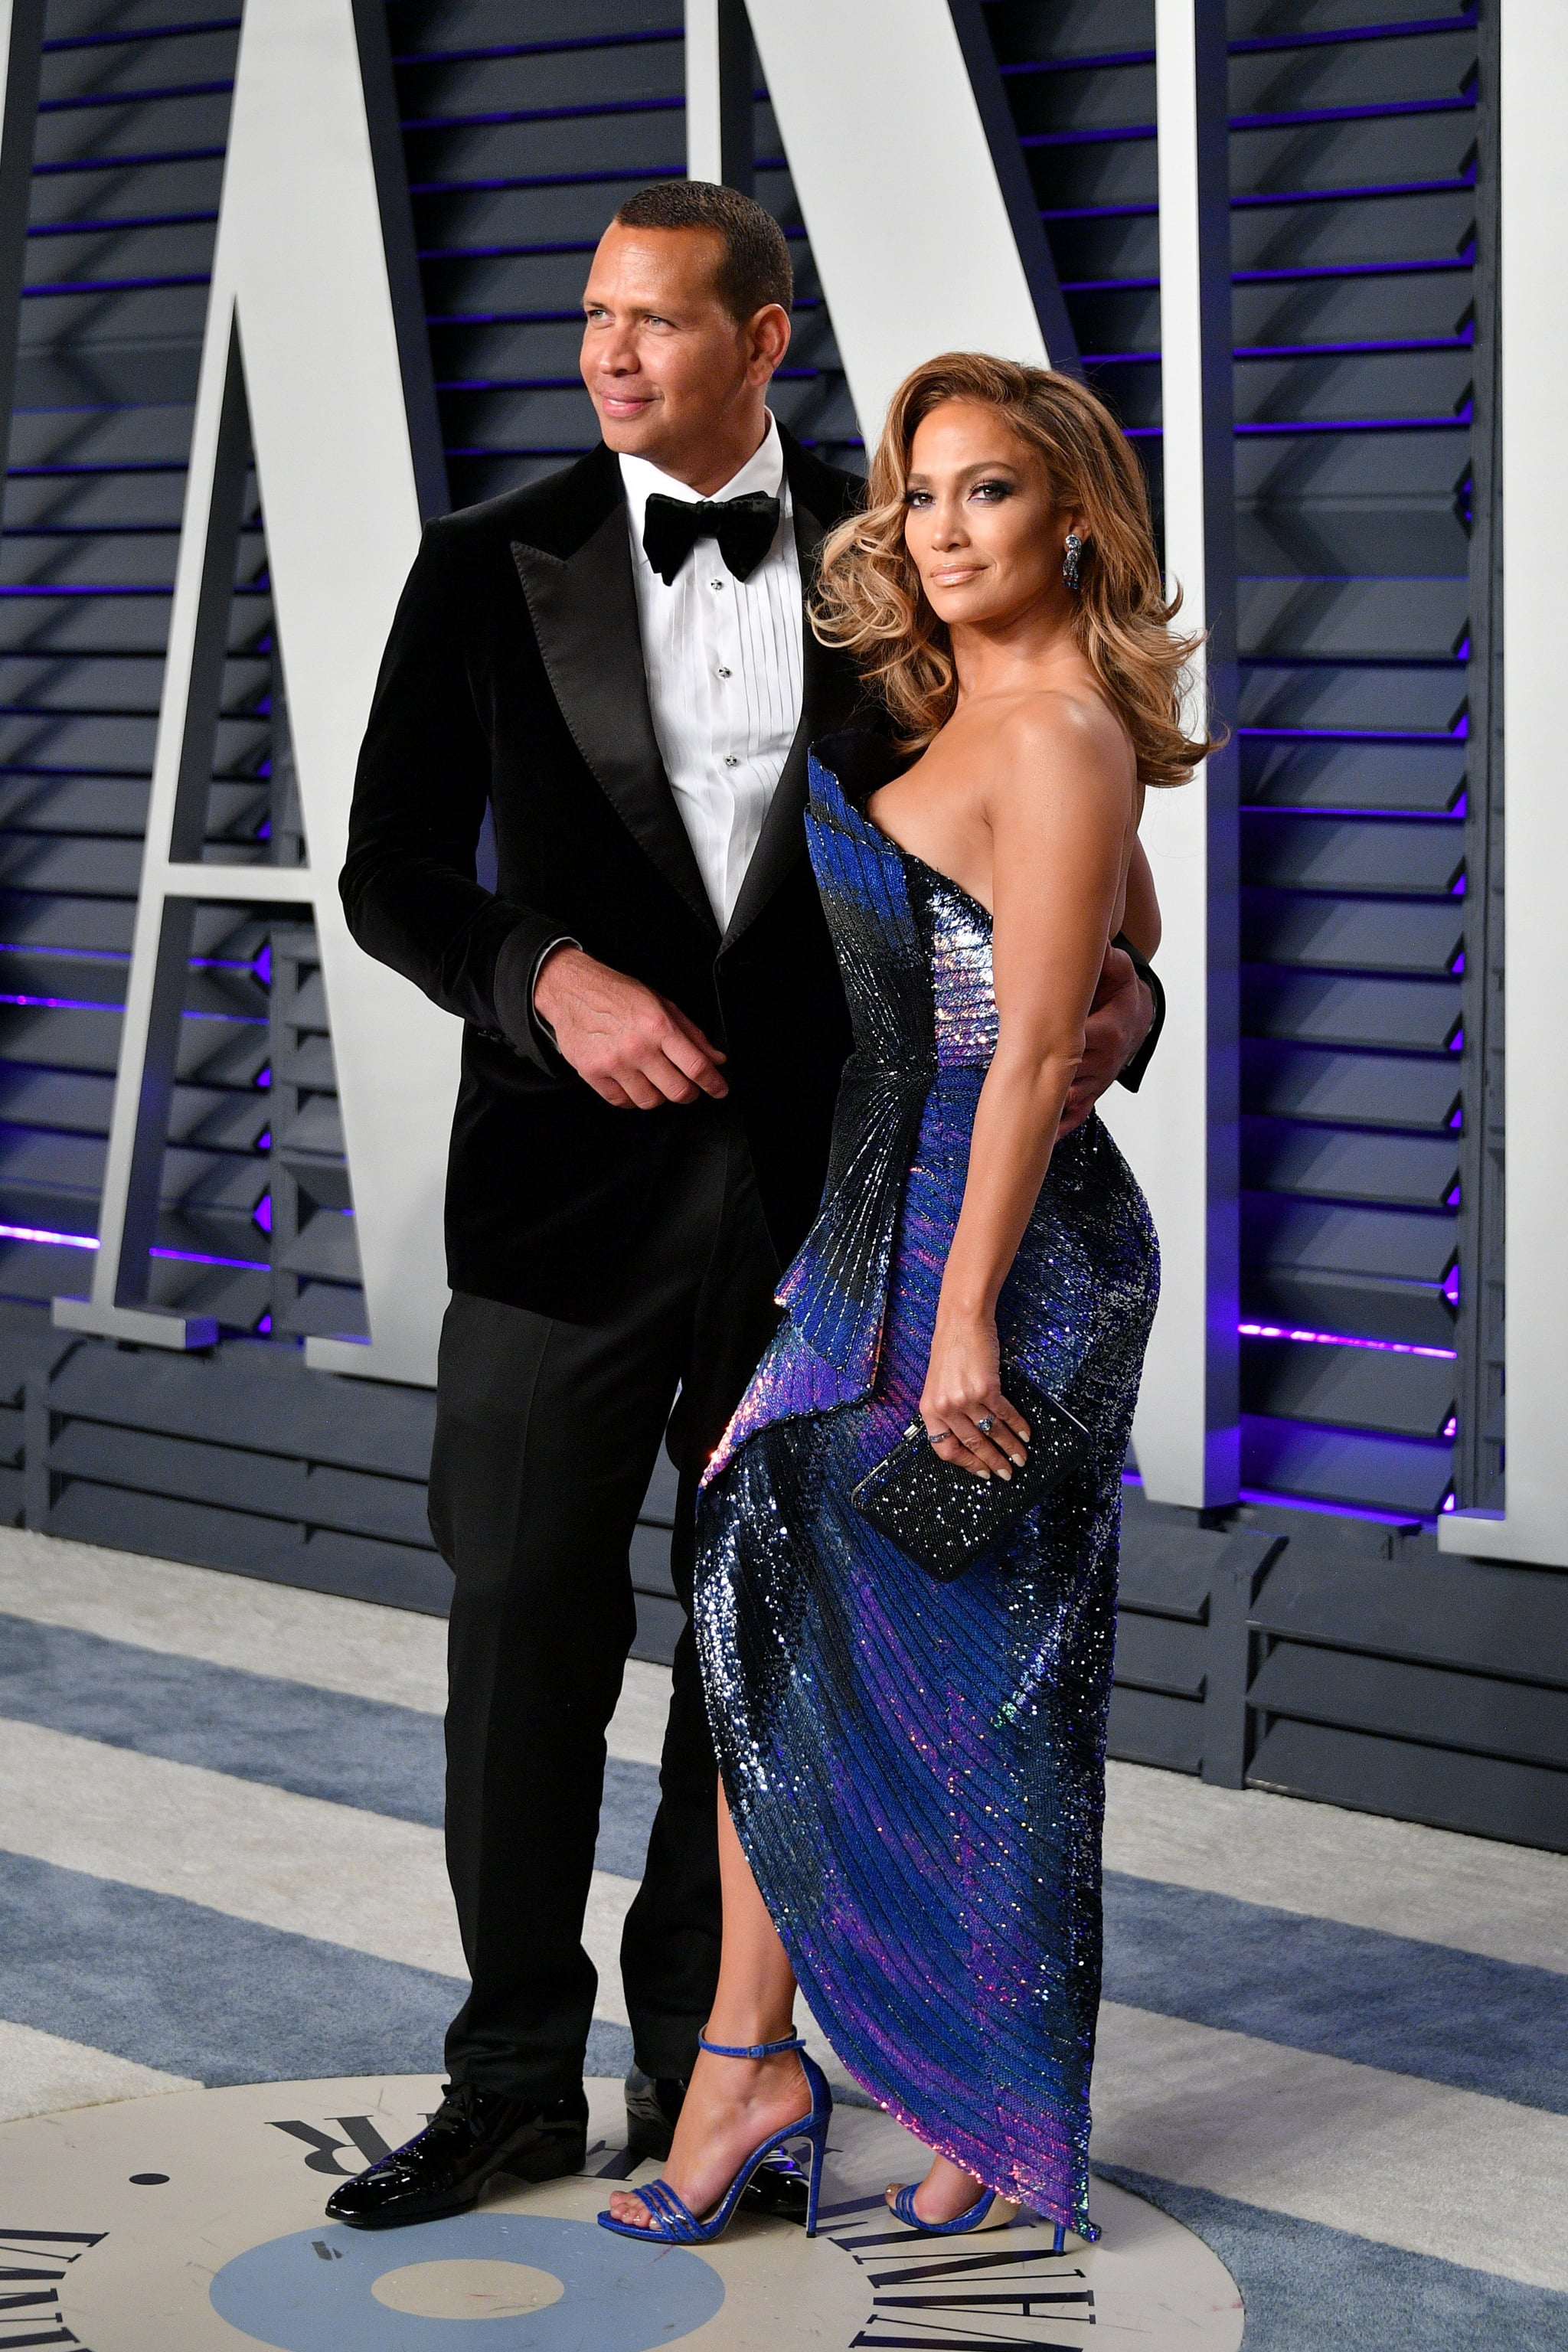 BEVERLY HILLS, CA - FEBRUARY 24:  Alex Rodriguez (L) and Jennifer Lopez attend the 2019 Vanity Fair Oscar Party hosted by Radhika Jones at Wallis Annenberg Centre for the Performing Arts on February 24, 2019 in Beverly Hills, California.  (Photo by Dia Dipasupil/Getty Images)